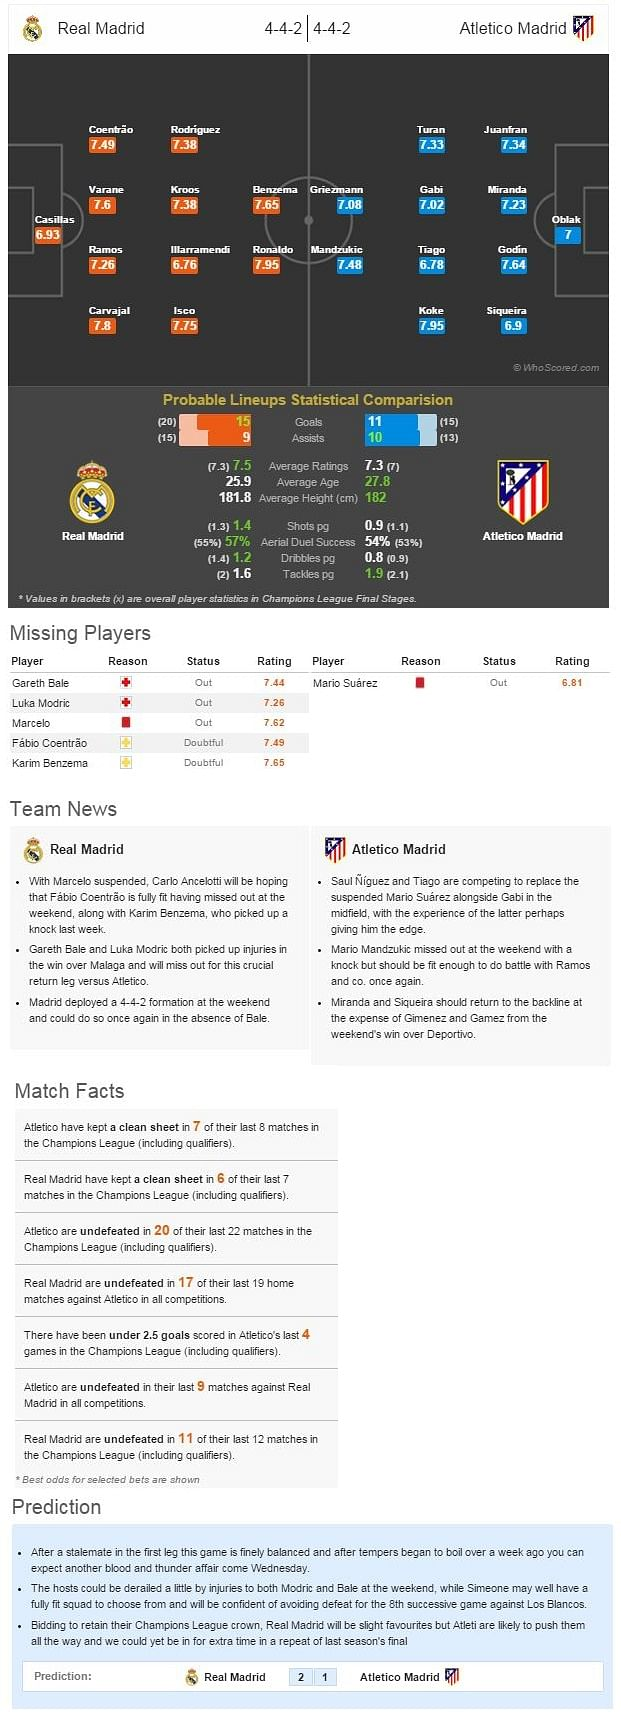 Real Madrid-Atletico Madrid Statistical Preview